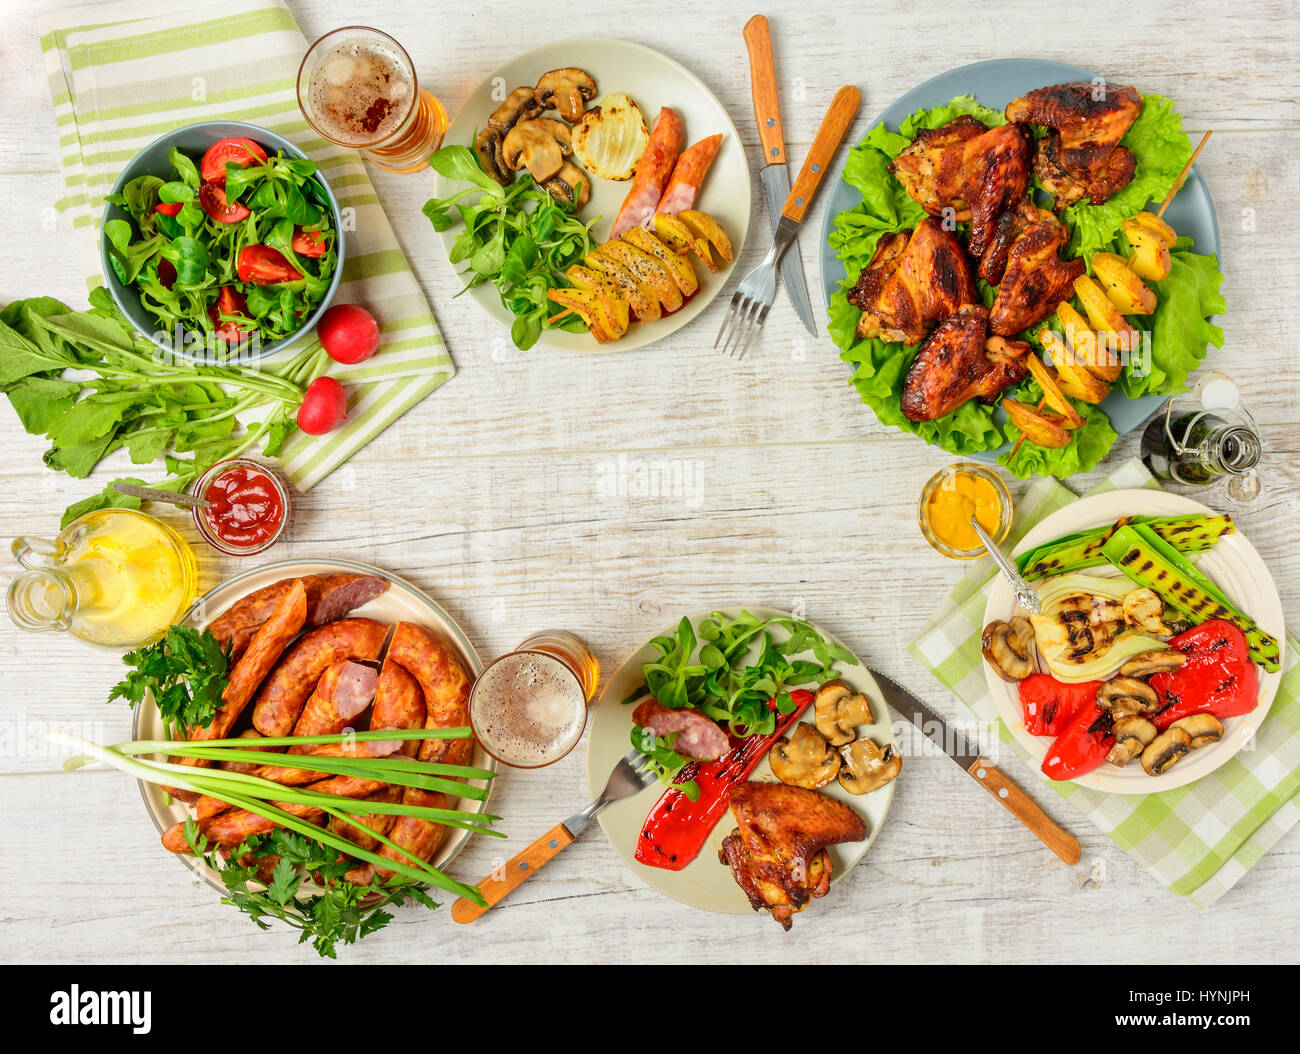 Dinner table with variety food, fried chicken wings, sausages, grilled vegetables in a pan, salad and  lager beer - Stock Image